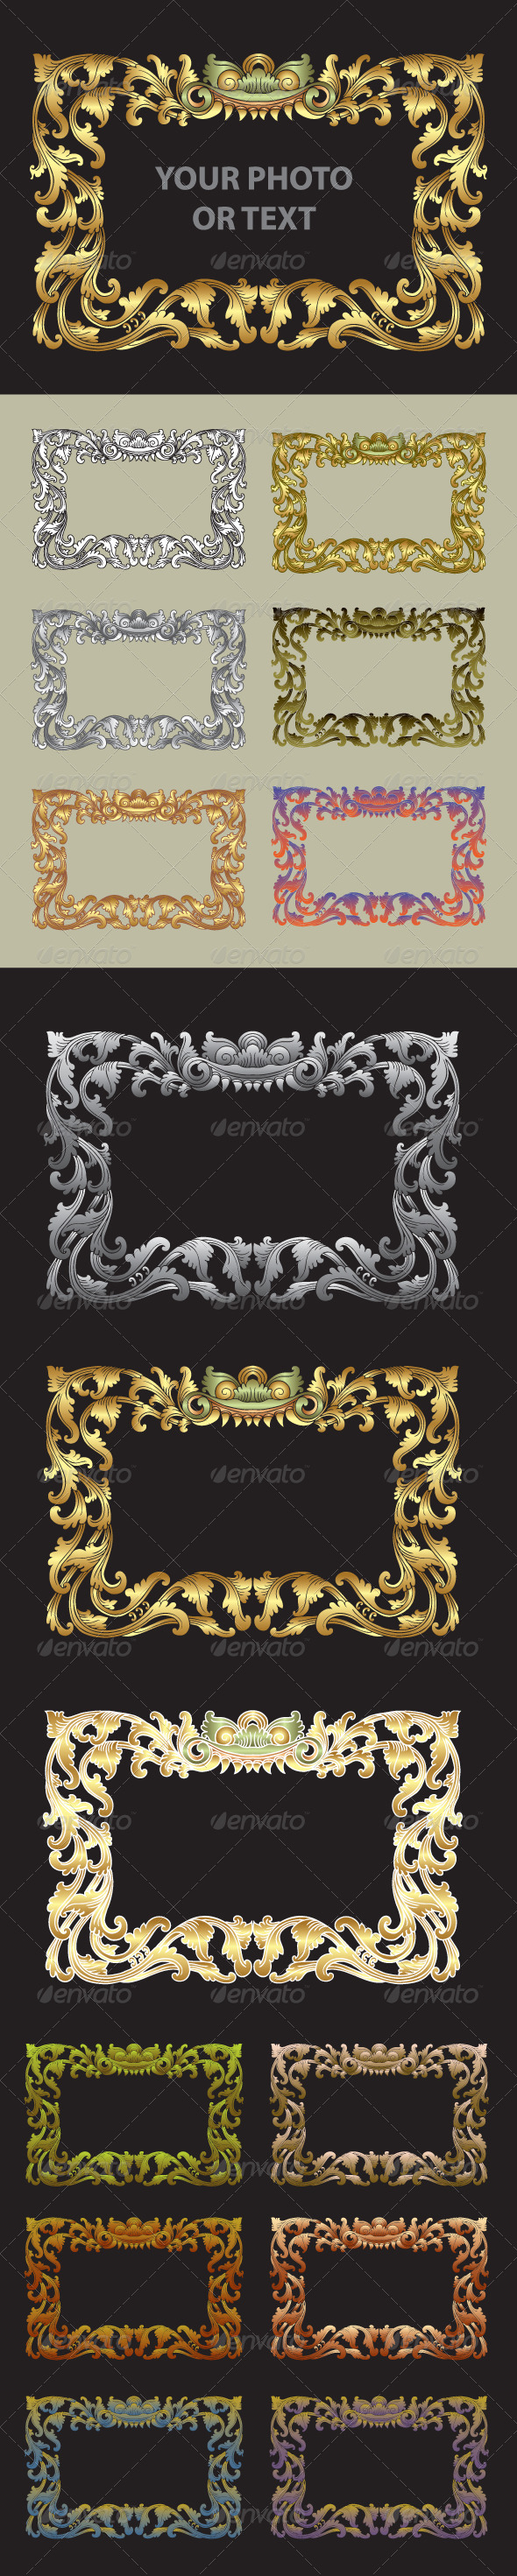 GraphicRiver Balinese Traditional Ornament Frame 4468825